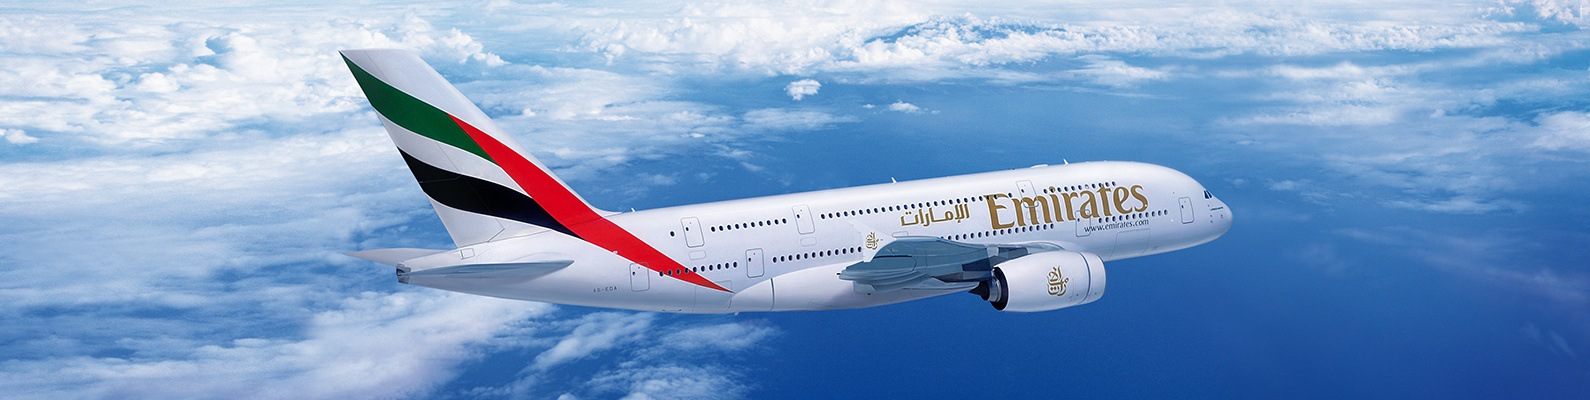 emirates airline supply and demand Airline fuel surcharge update the combined result of increased supply and lower global demand com/article/2015/01/25/uk-emirates-airlines-oil.